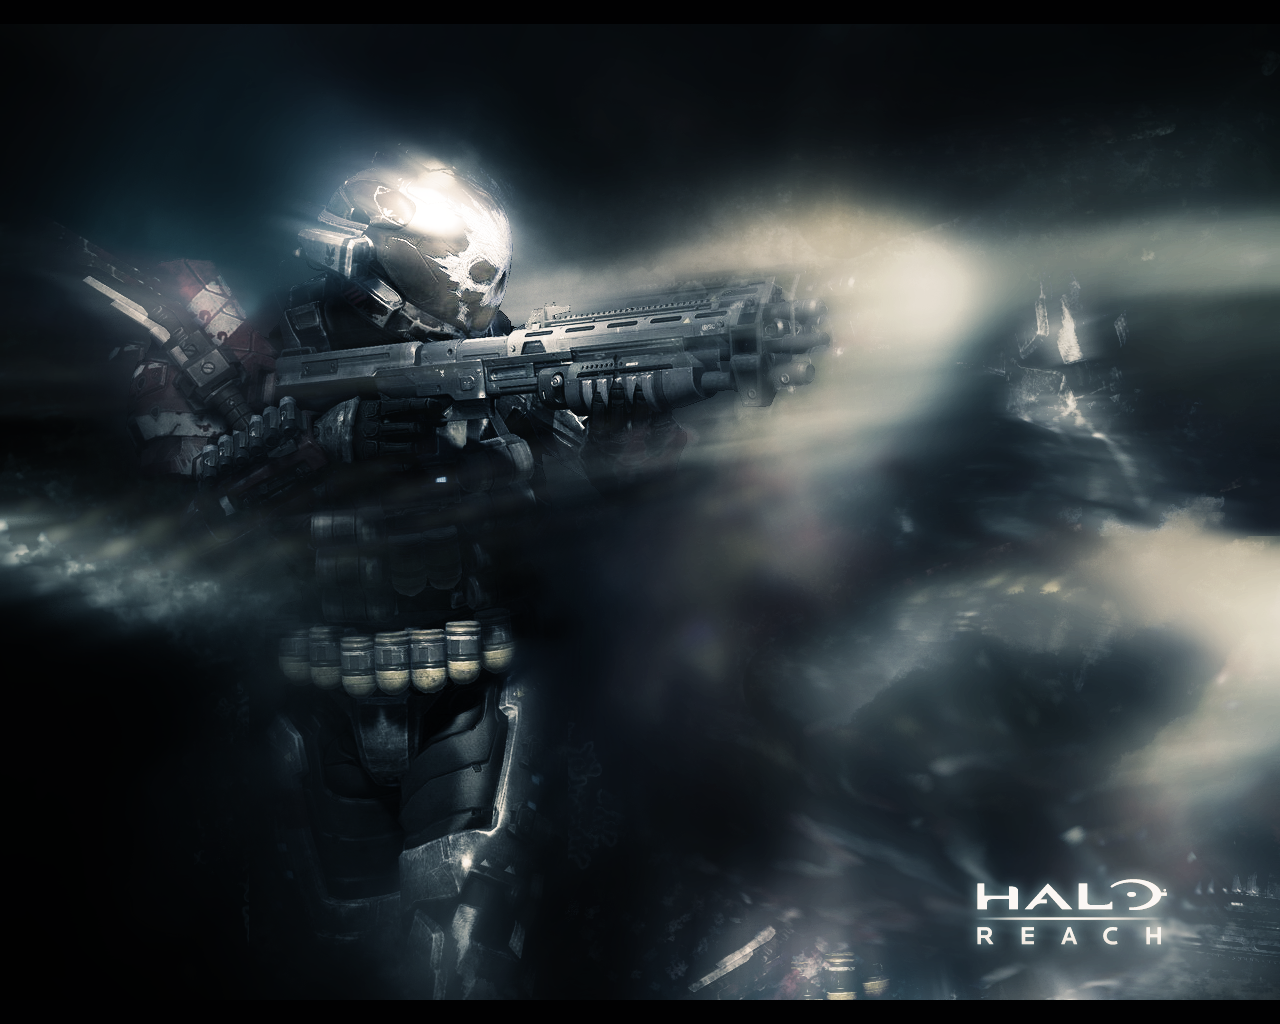 Halo Reach Backgrounds Wallpaper